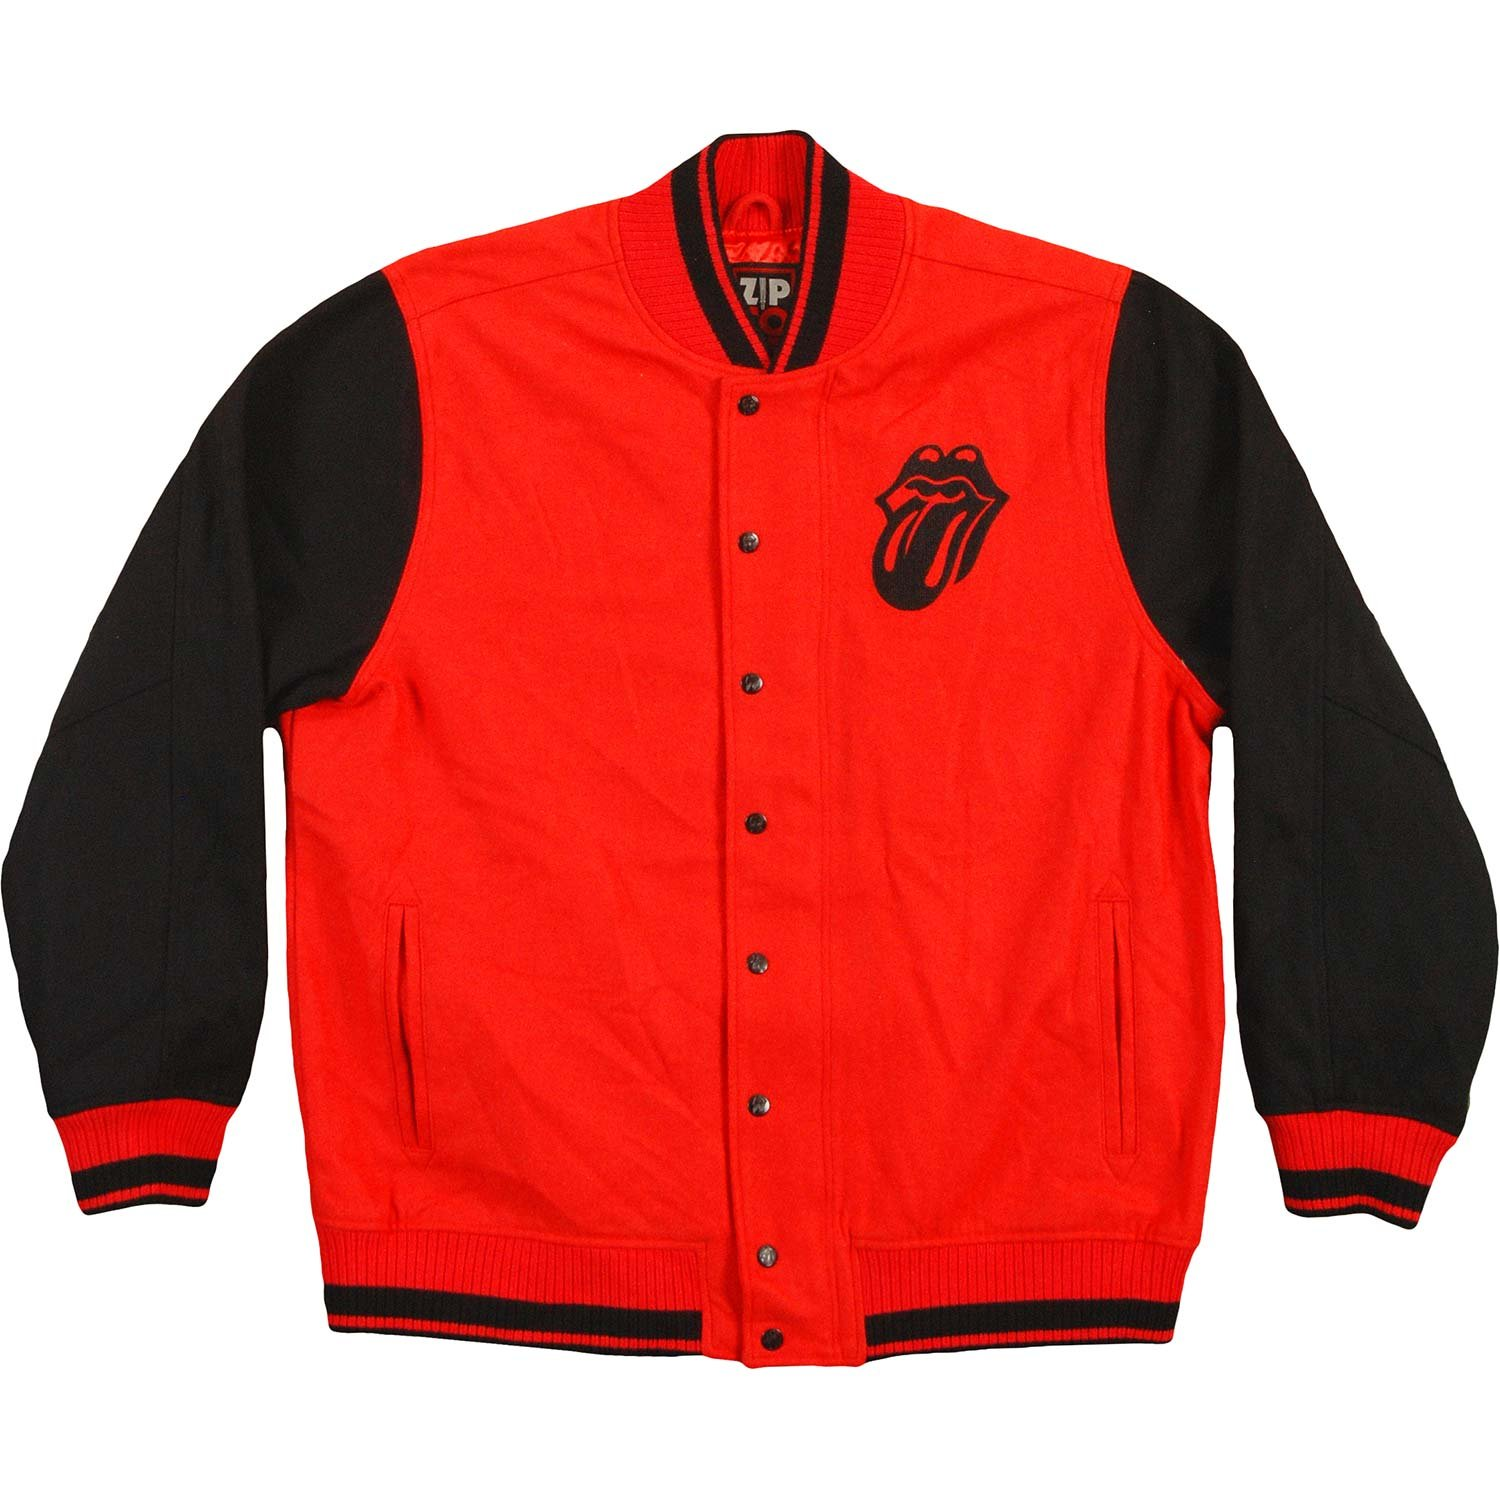 Rolling Stones Men's Varsity Jacket Small Red by Rolling Stones